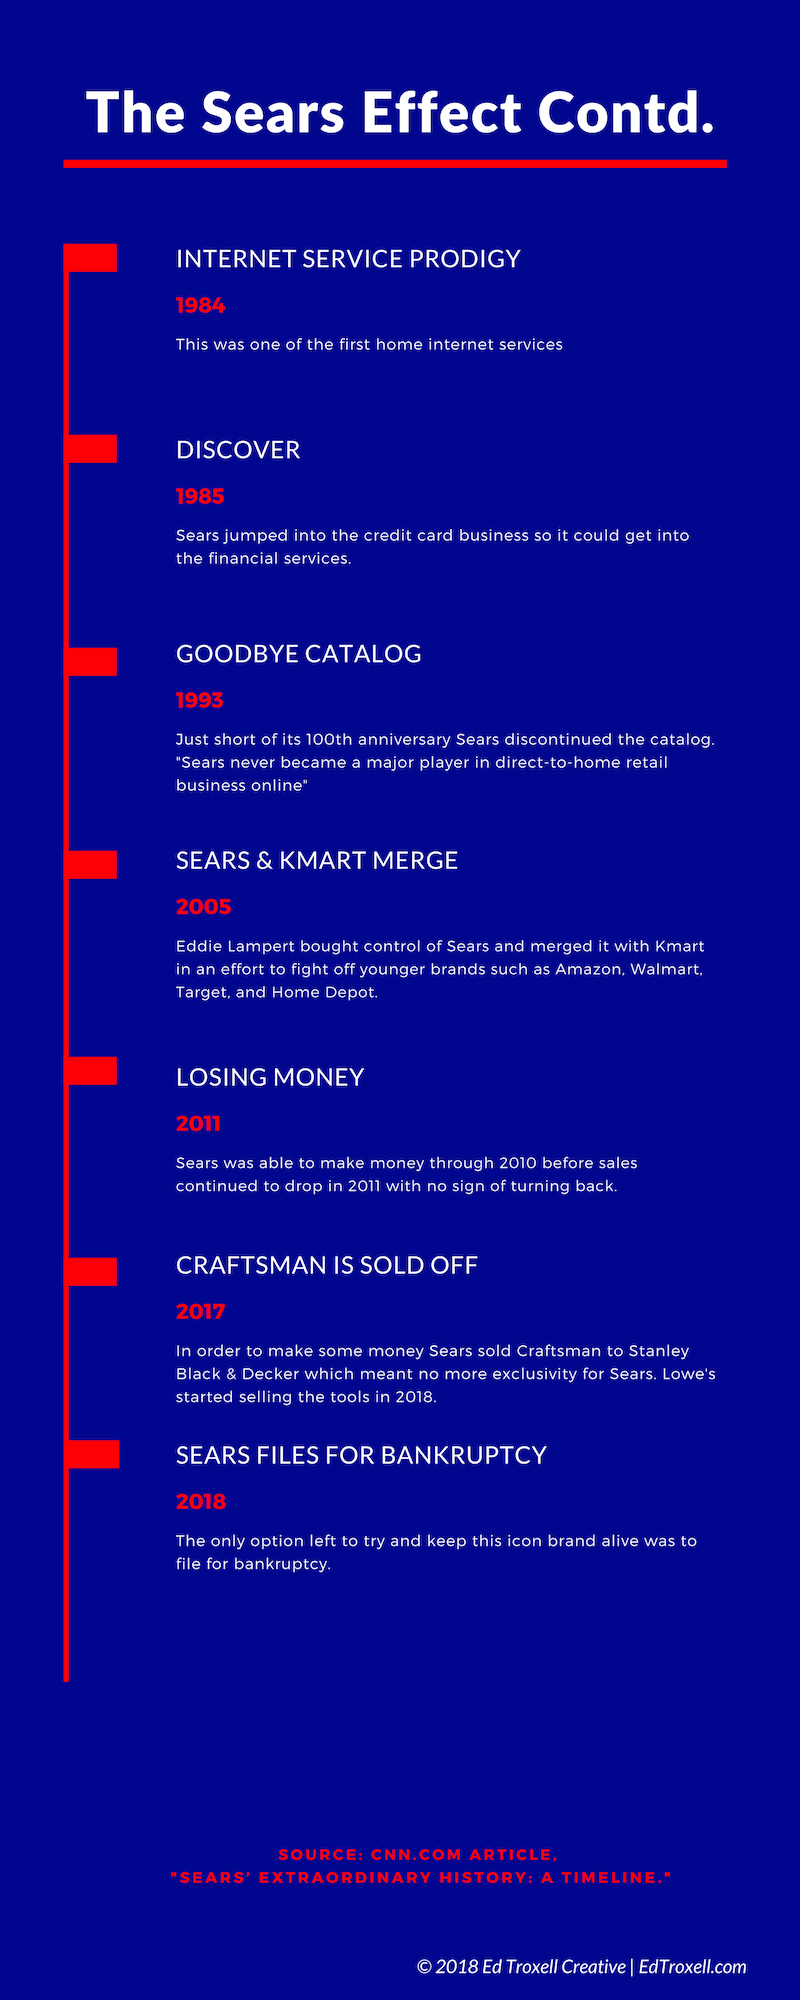 A continued timeline of the history of Sears